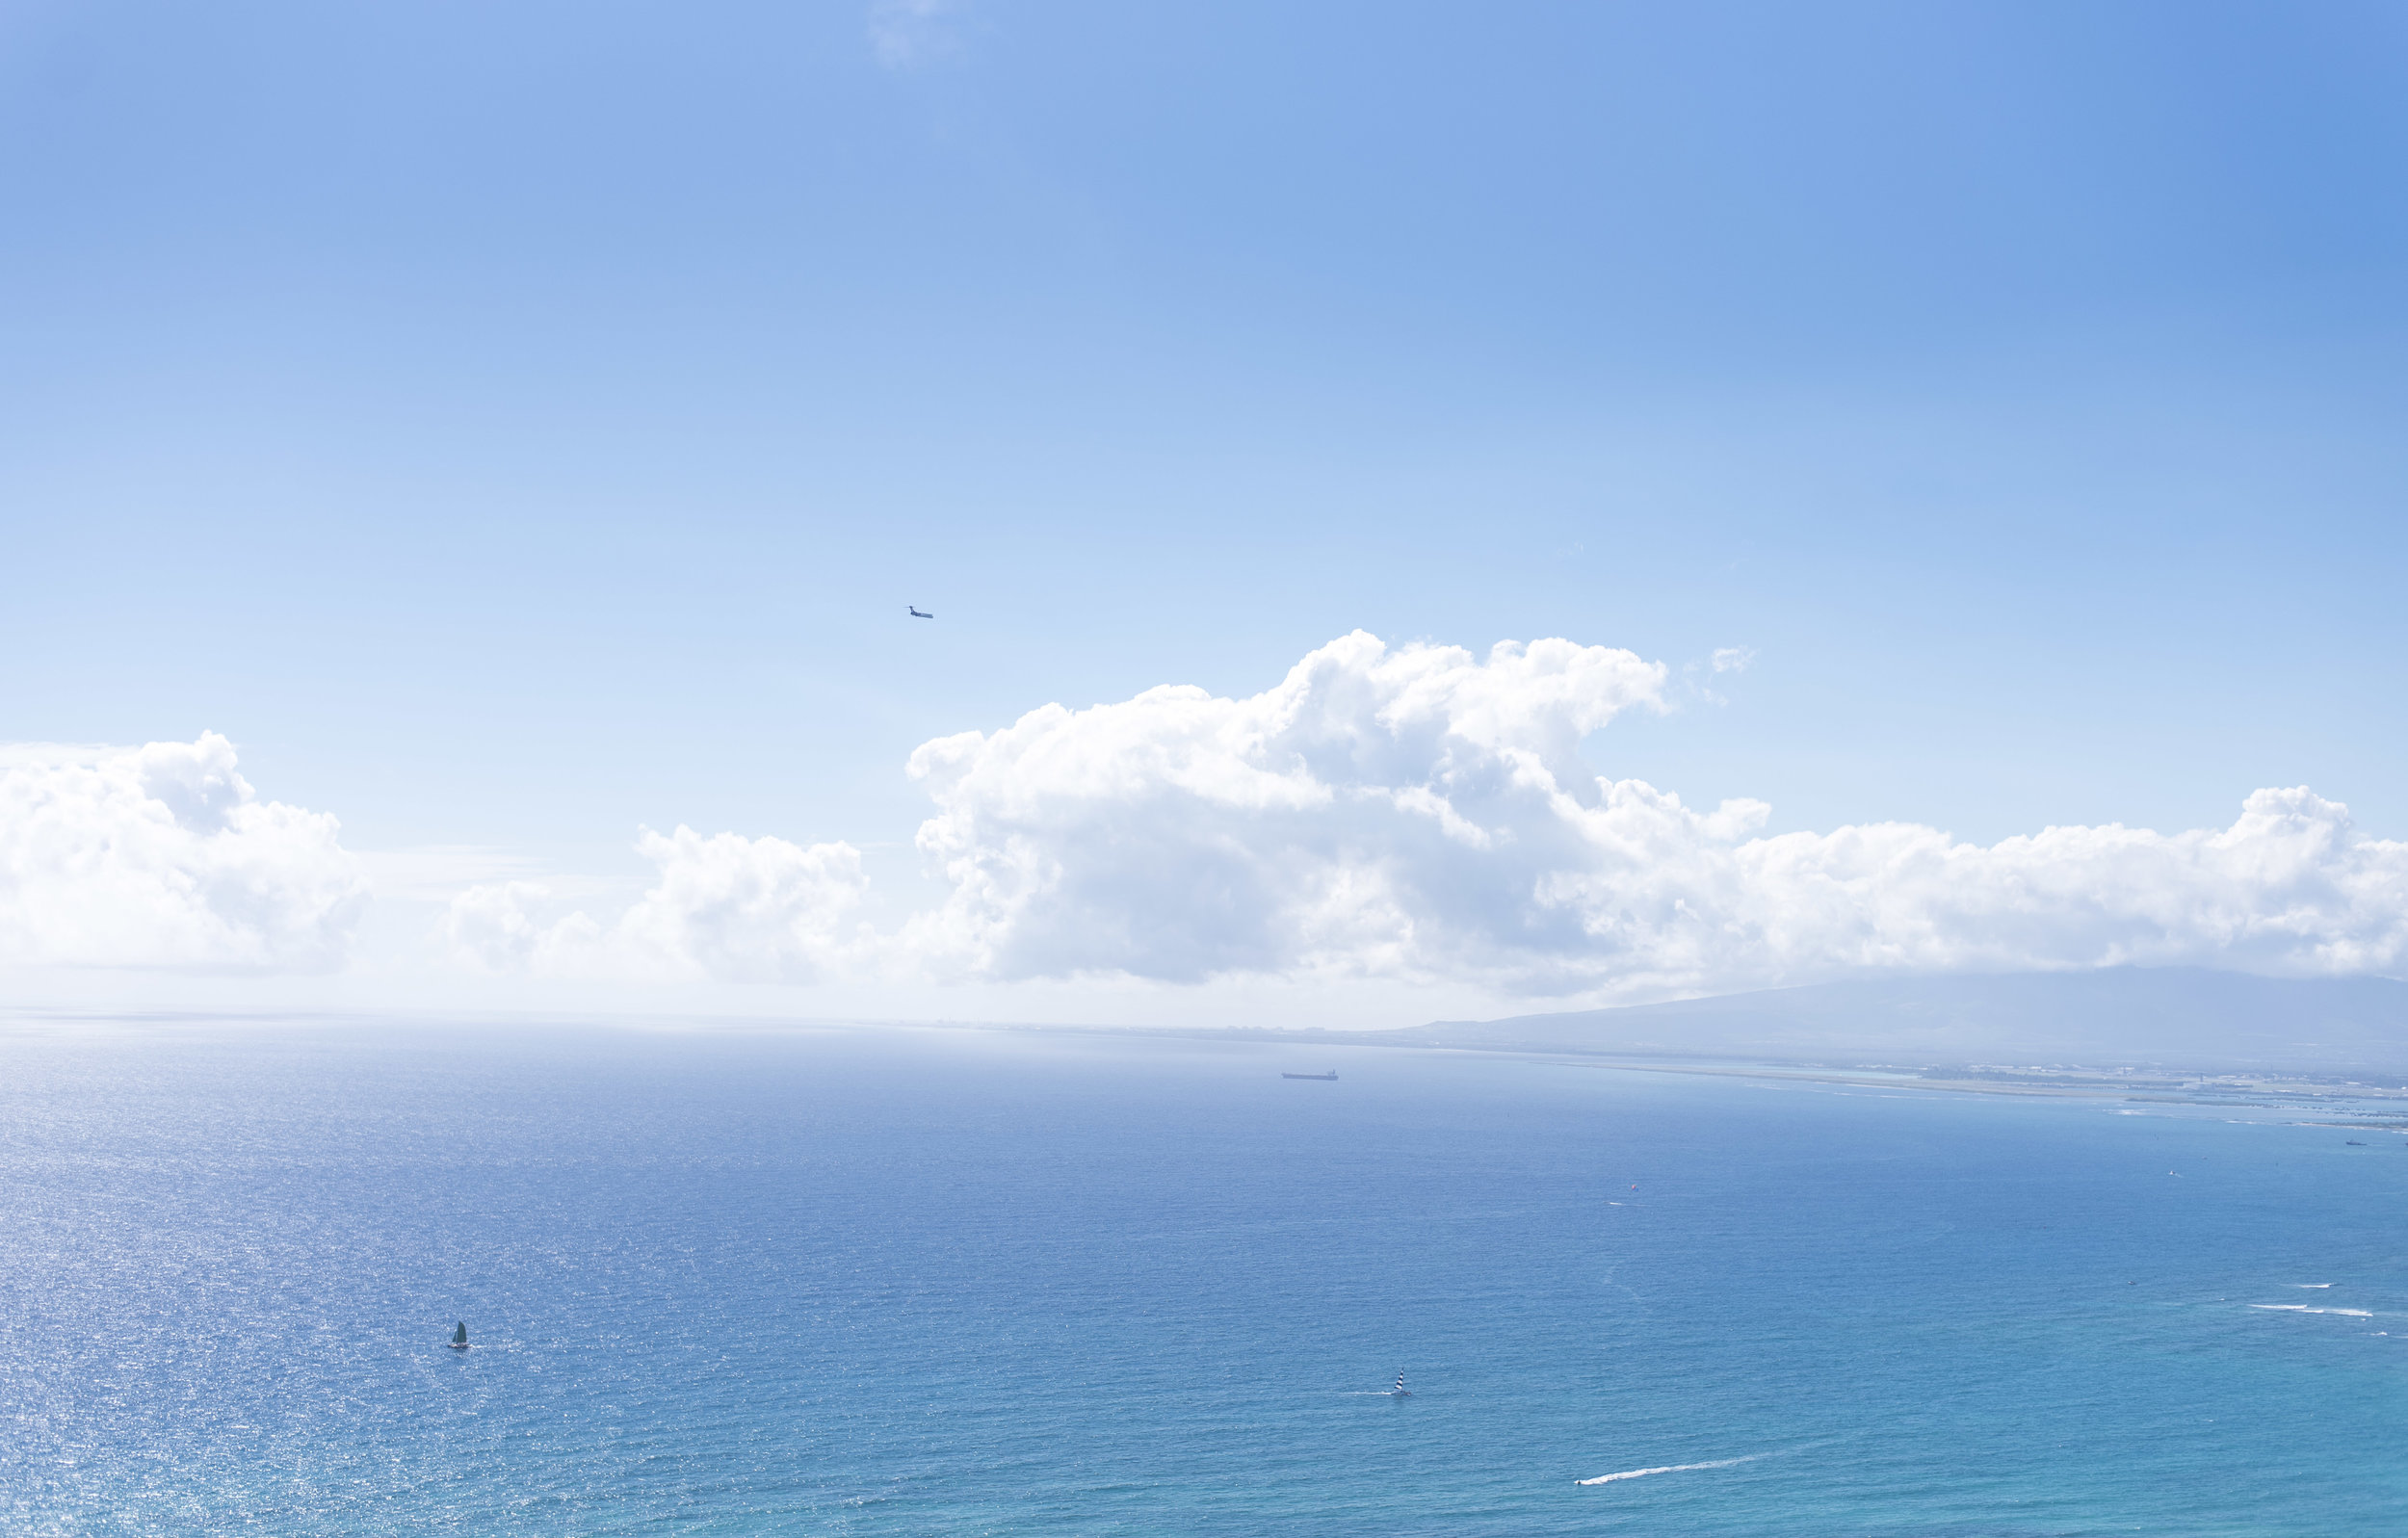 An approaching airplane and tiny sailboats appear as dots on the horizon. Can you spot them all?